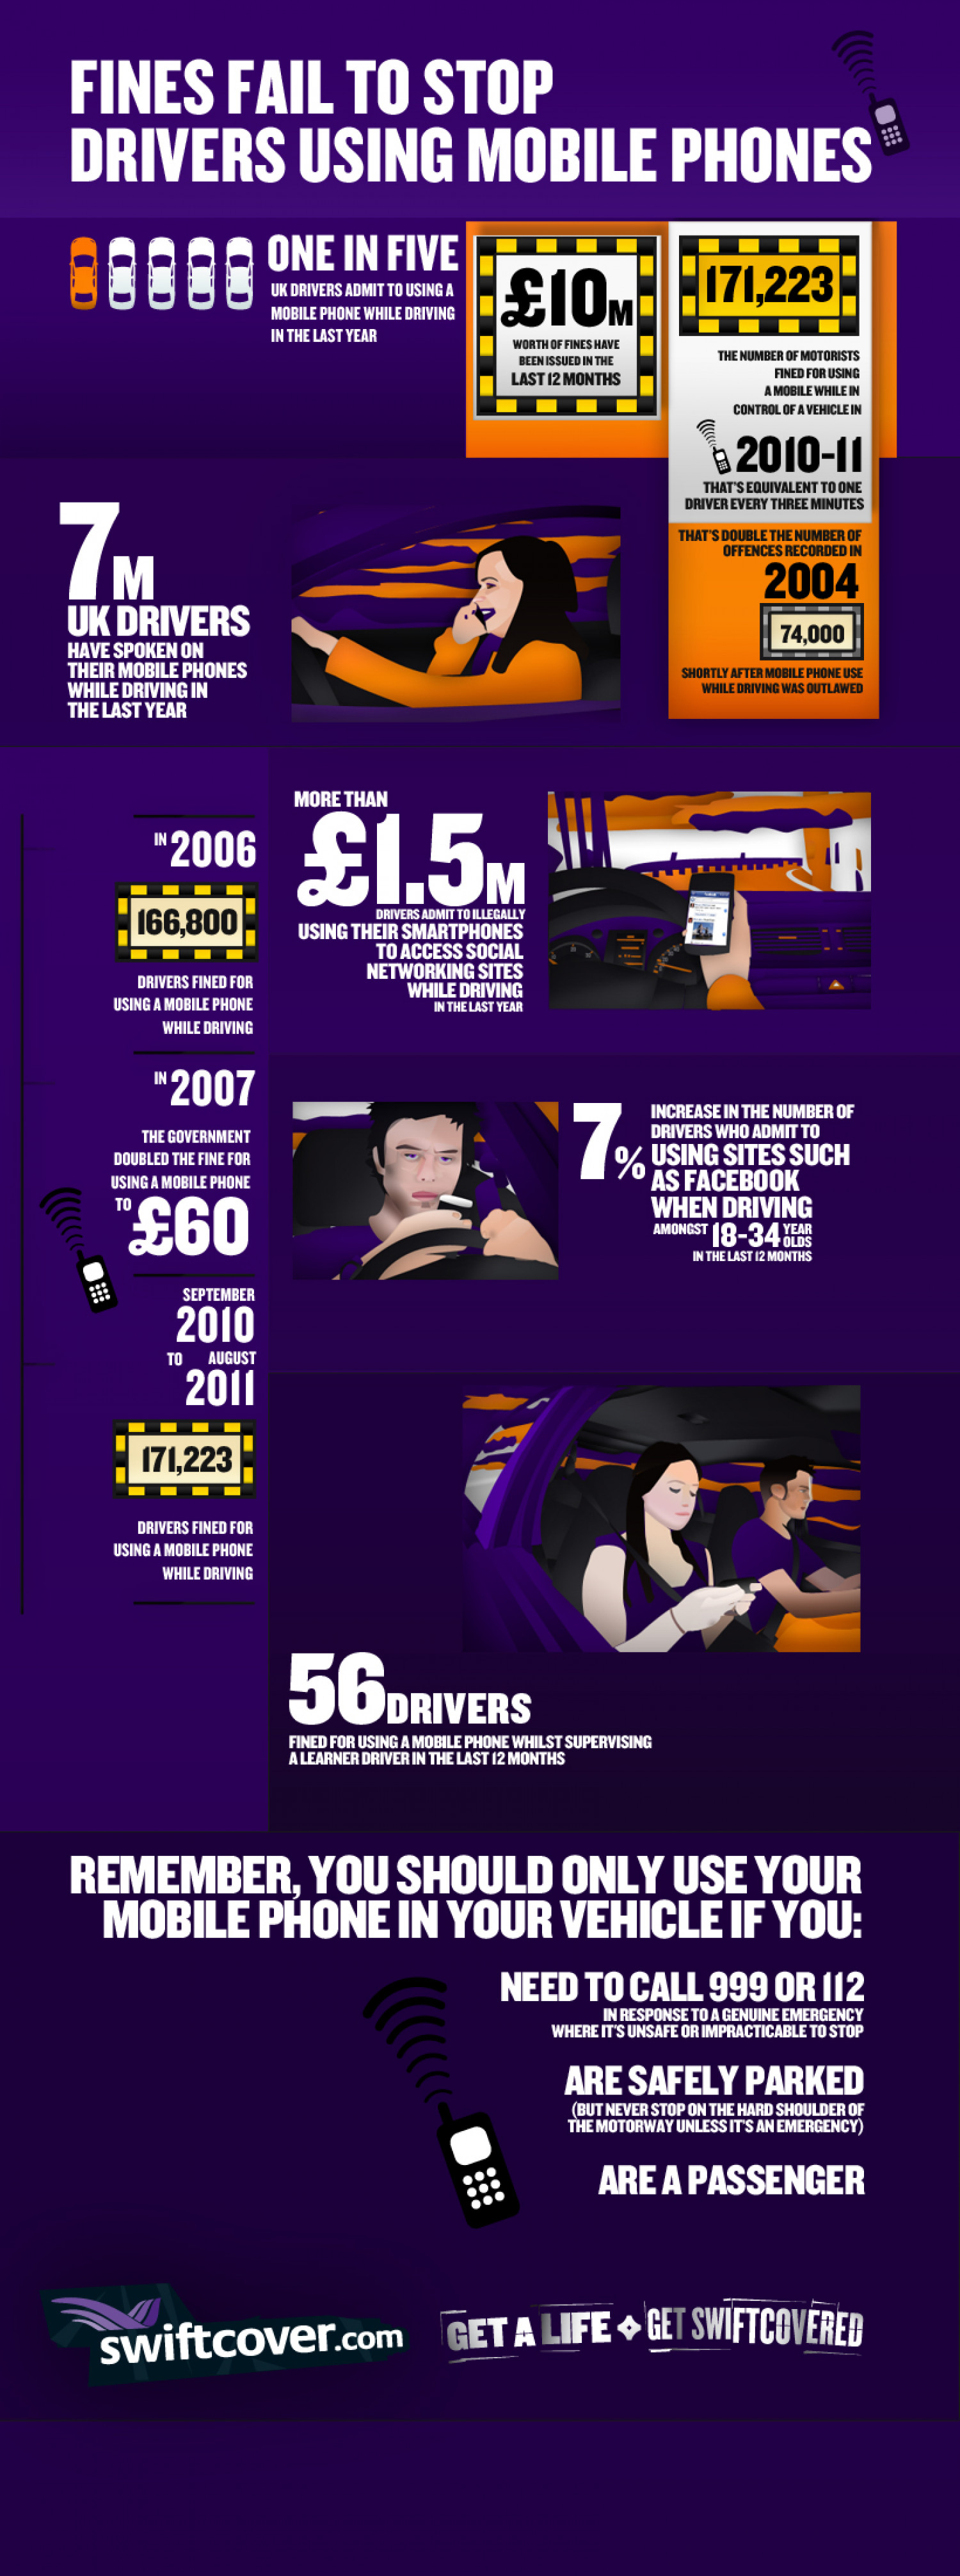 Fines Fail to Stop Drivers Texting | swiftcover.com Infographic